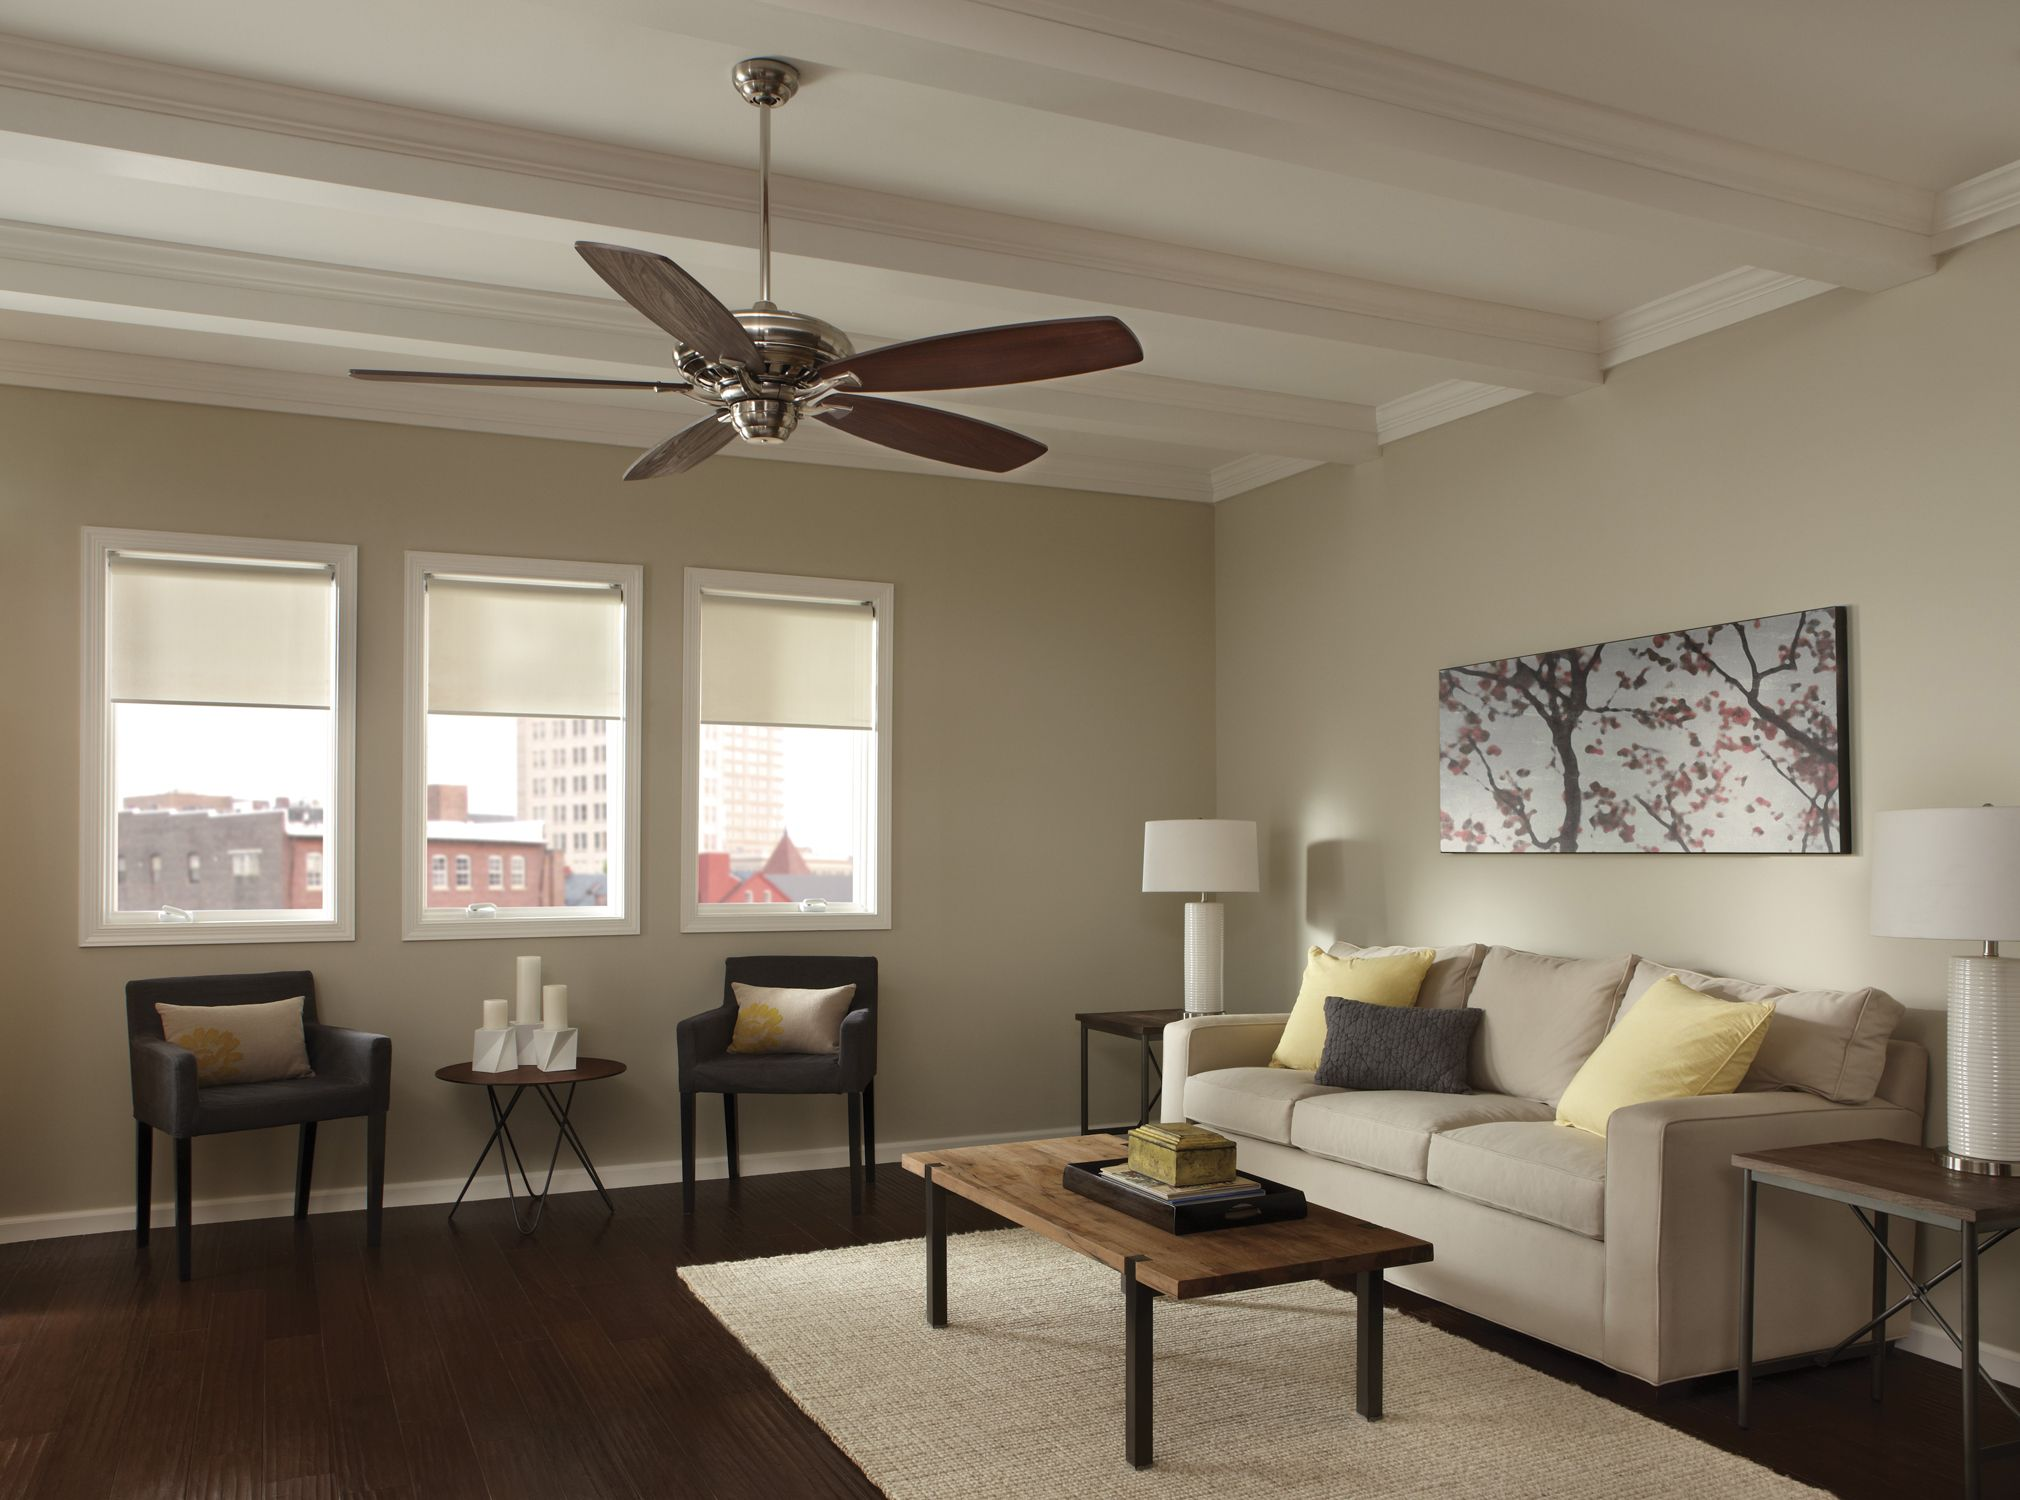 Maxima Collection by Monte Carlo Maxima Fan fan livingroom